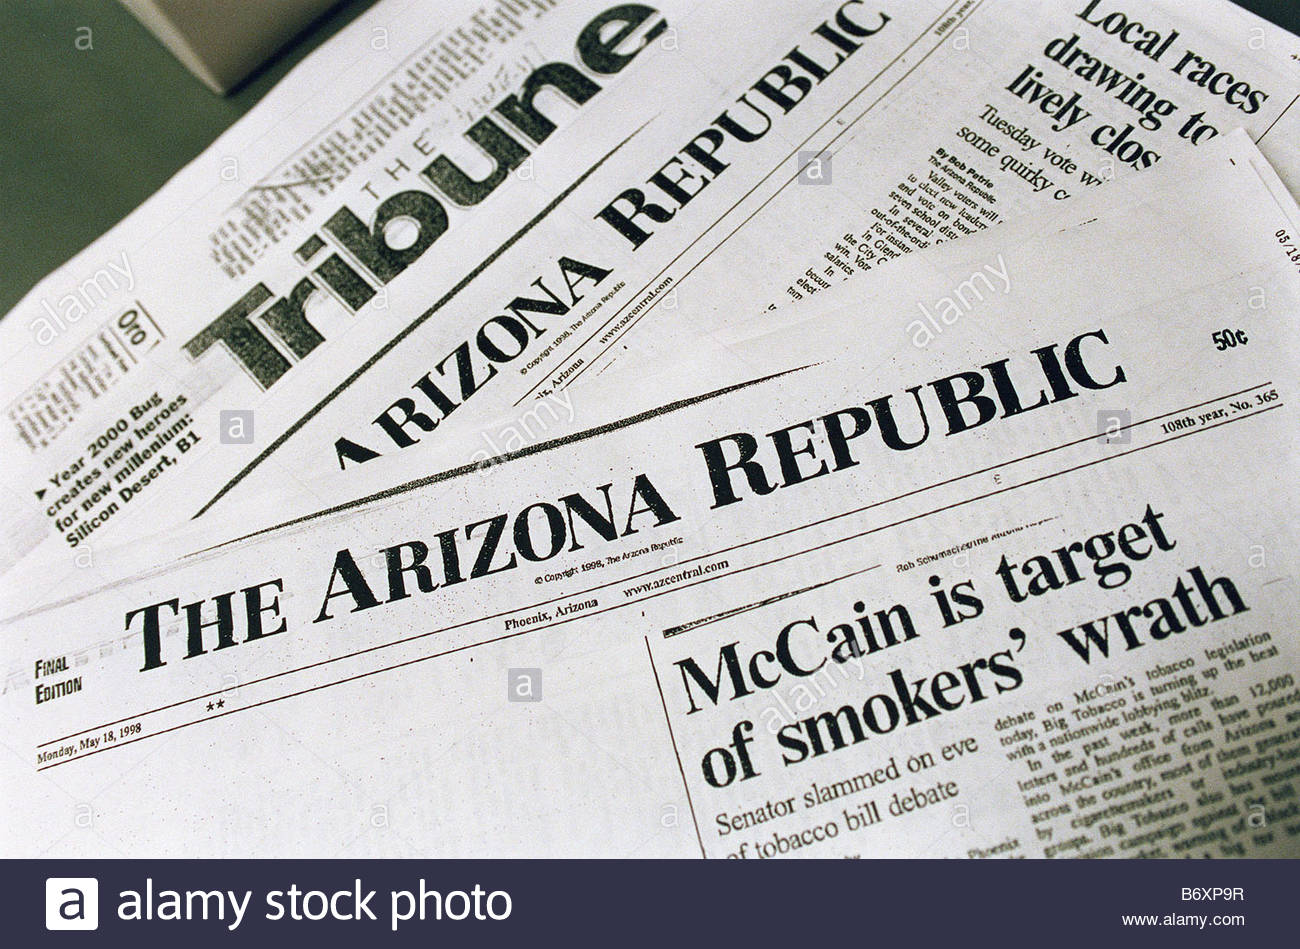 5 18 98 MCCAIN S DAY Photocopies of Monday newspaper clippings in the press office of Sen John McCain R Ariz CONGRESSIONAL - Stock Image